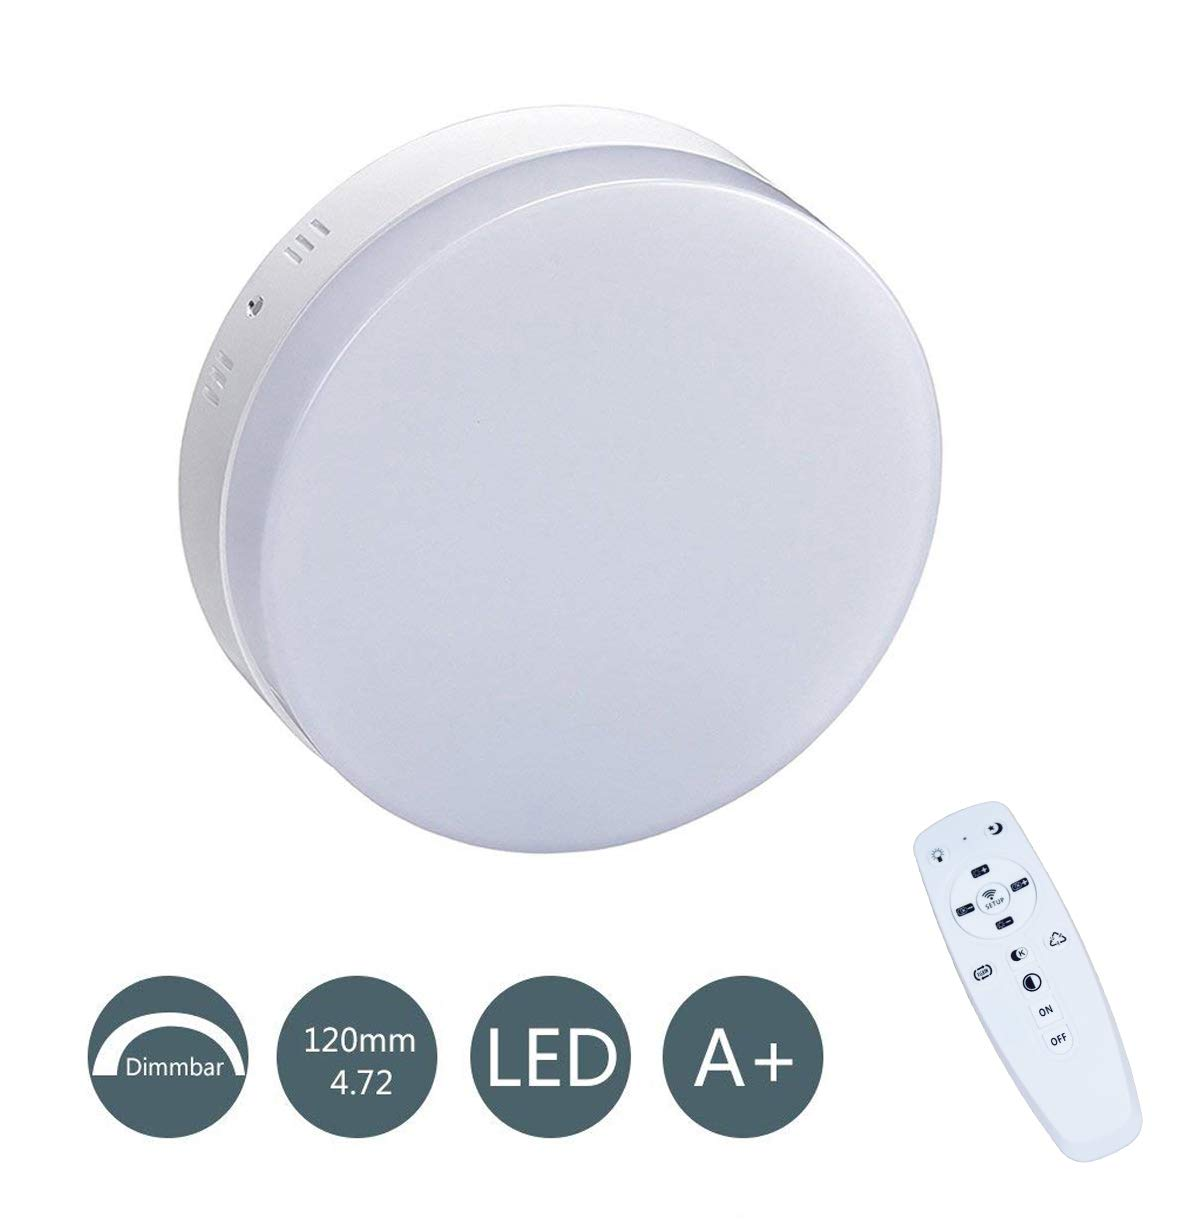 24W Dimmable Ceiling Light with Remote Control,Flush Mount Lighting,Adjustable Ceiling Lamp,Modern Lighting for Kitchen,Hallway,Bathroom,Living Room,2040LM,85-265V W-LITE